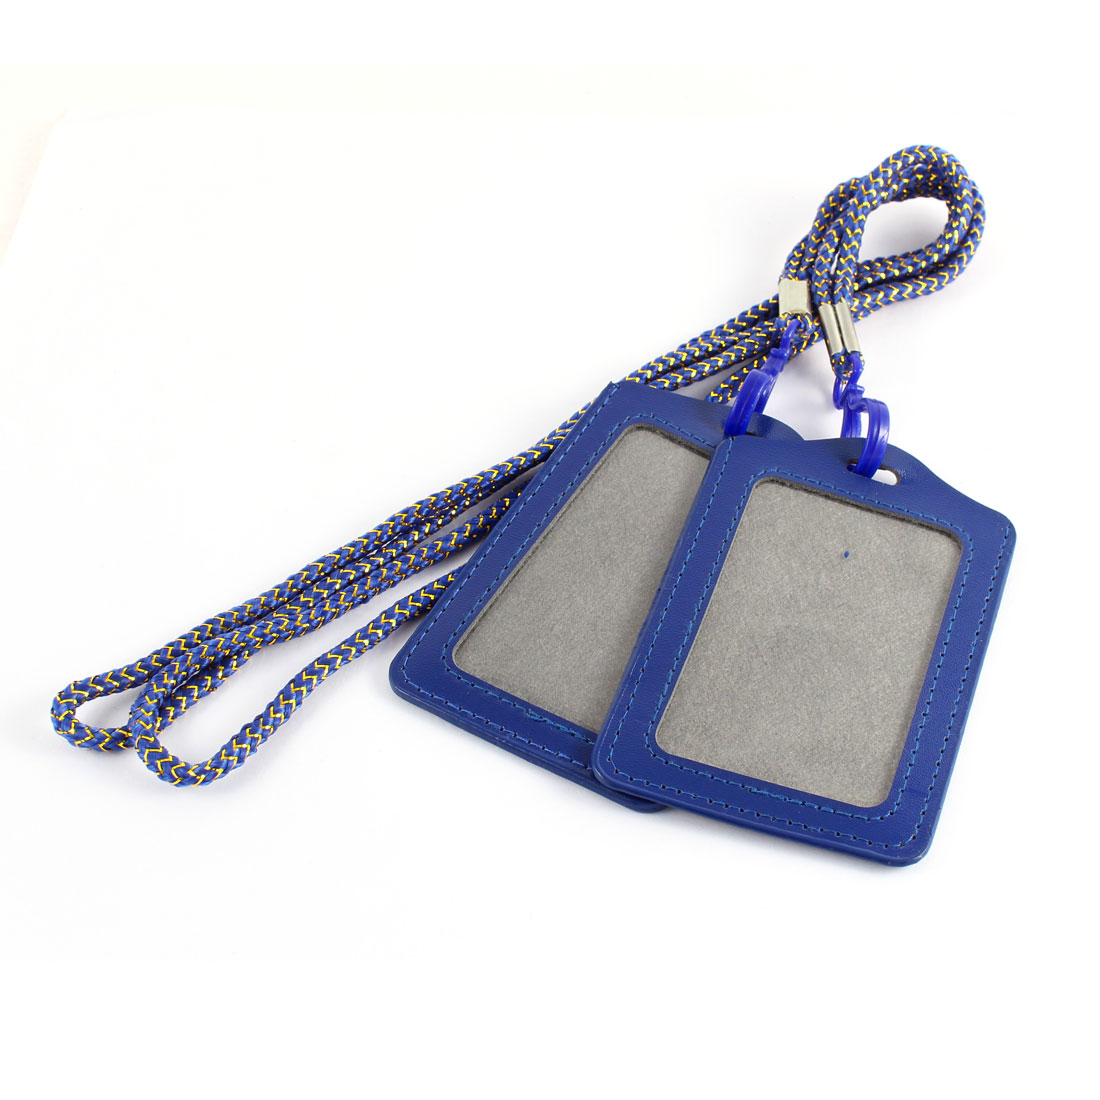 School Faux Leather Vertical Style ID Name Card Tag Badge Holder Carrier w Lanyard Blue 2pcs